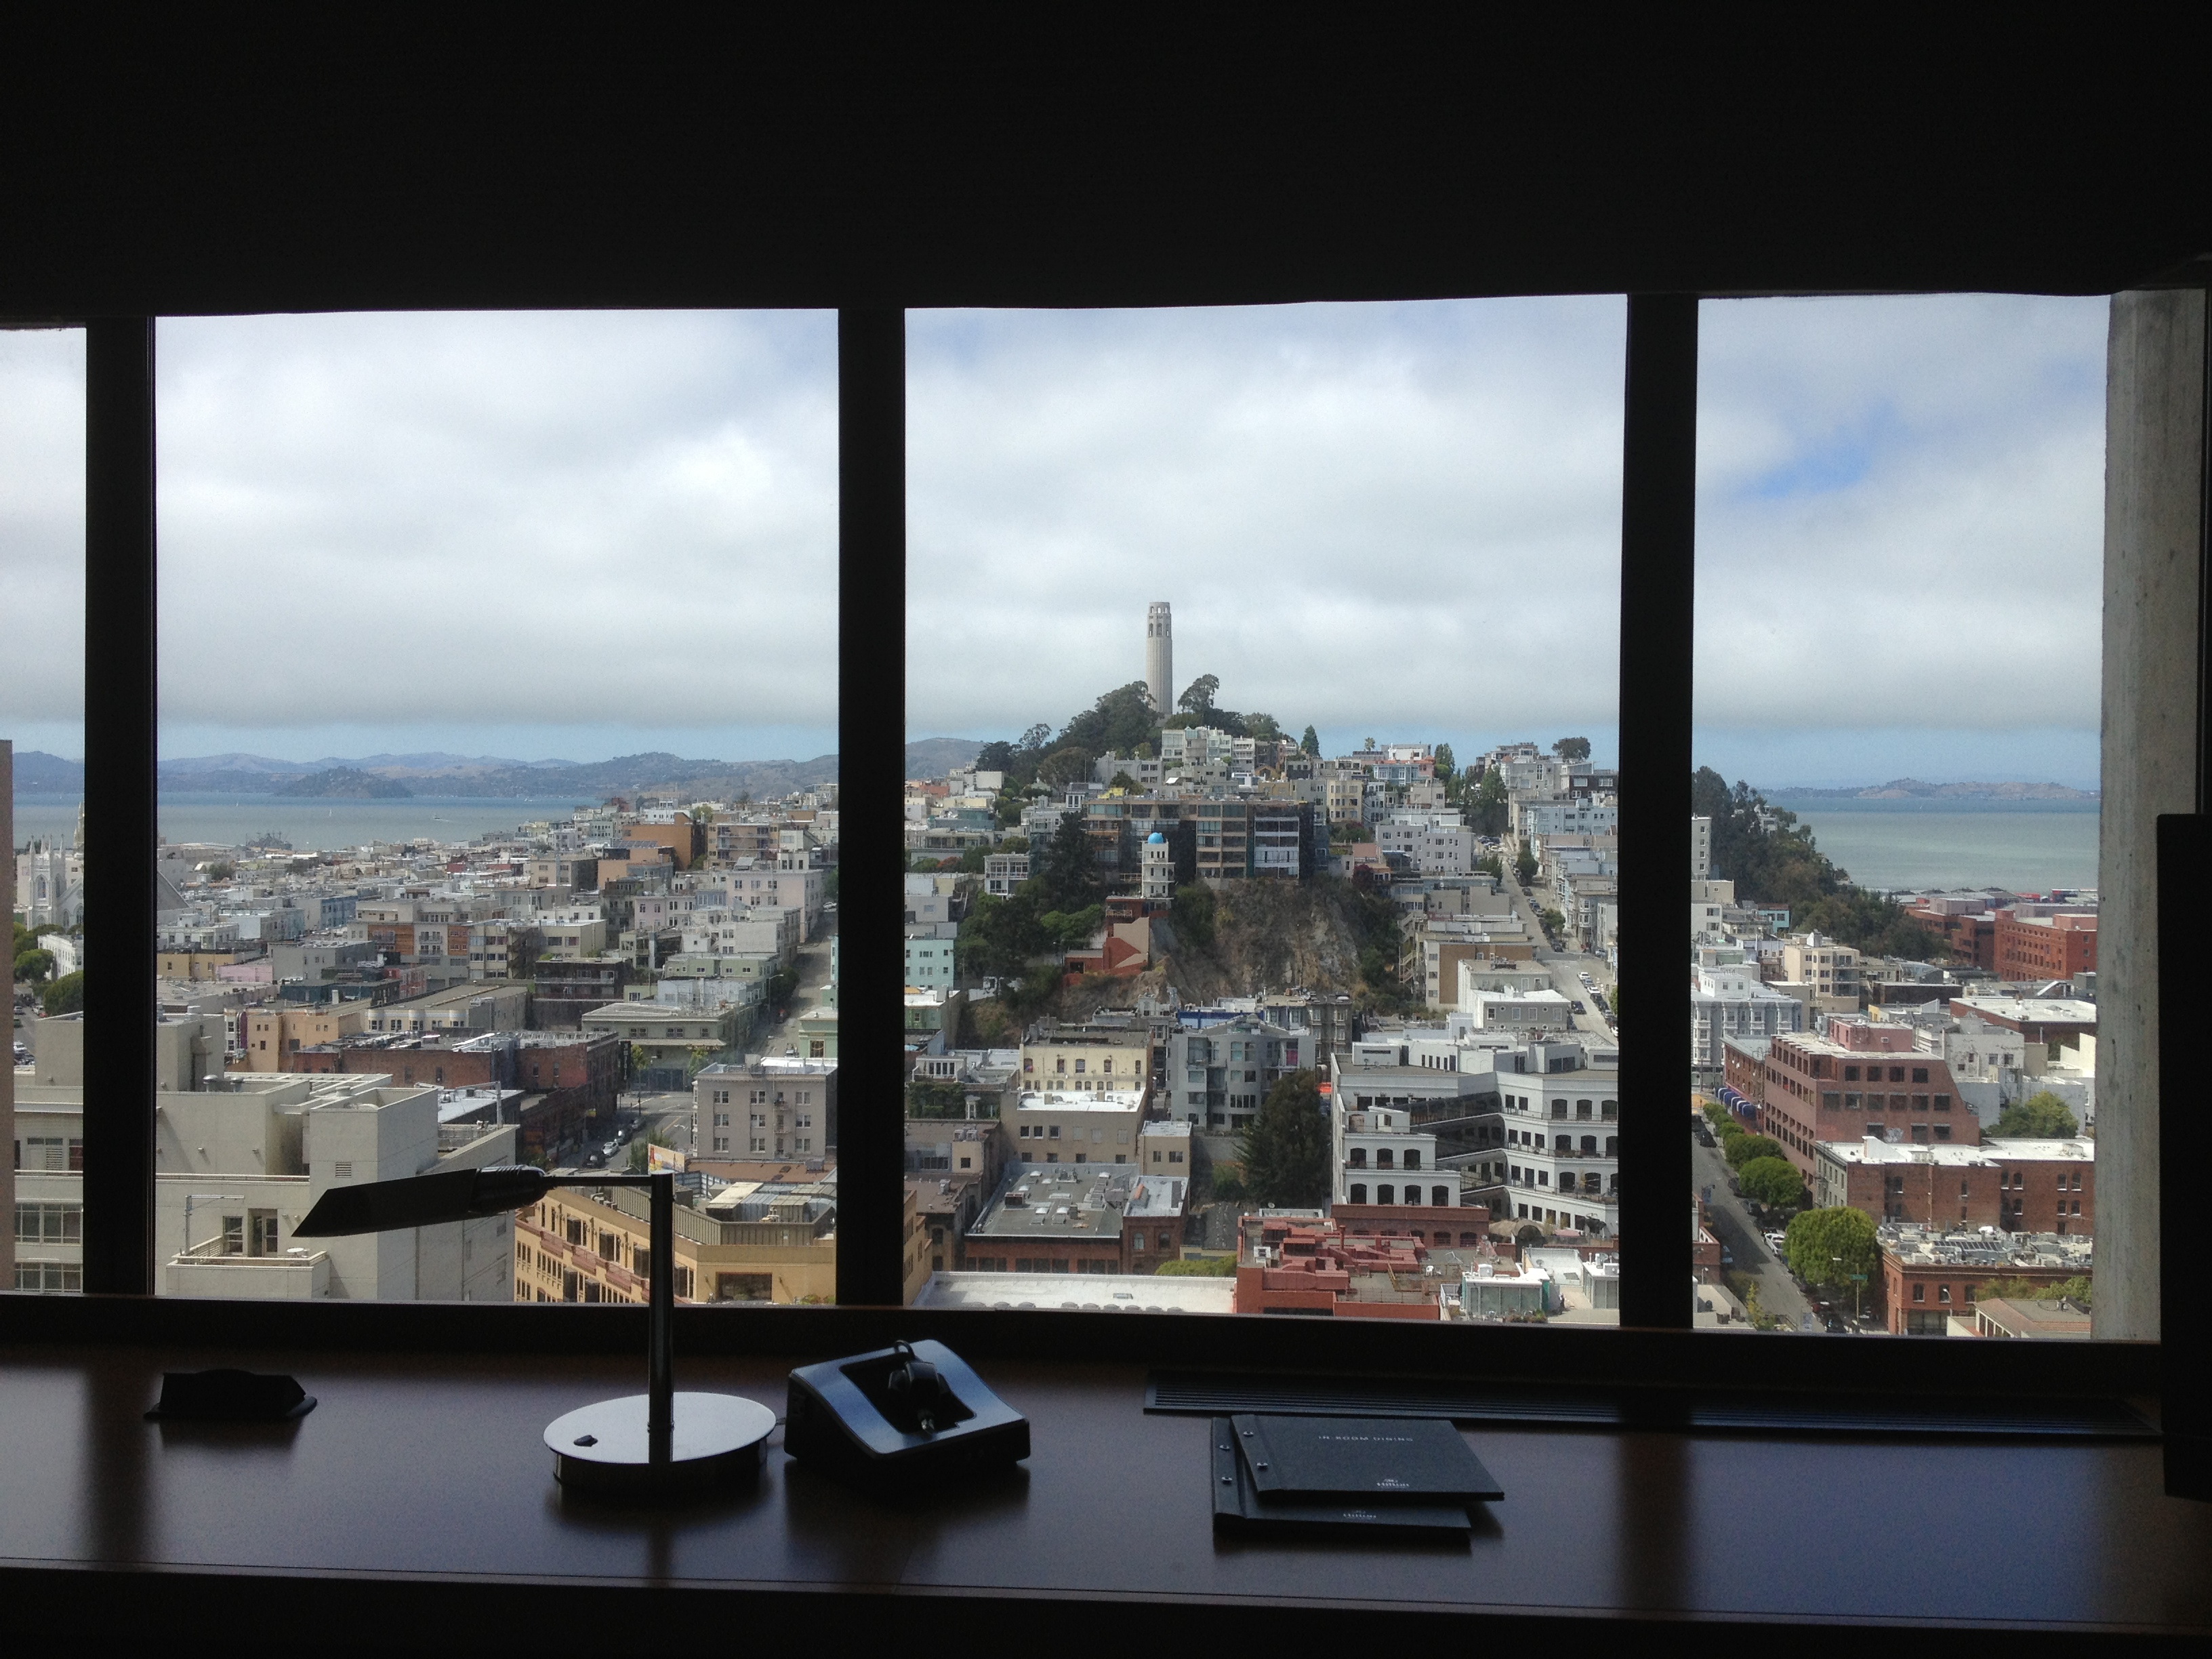 hilton san francisco financial district hotel review - pointchaser